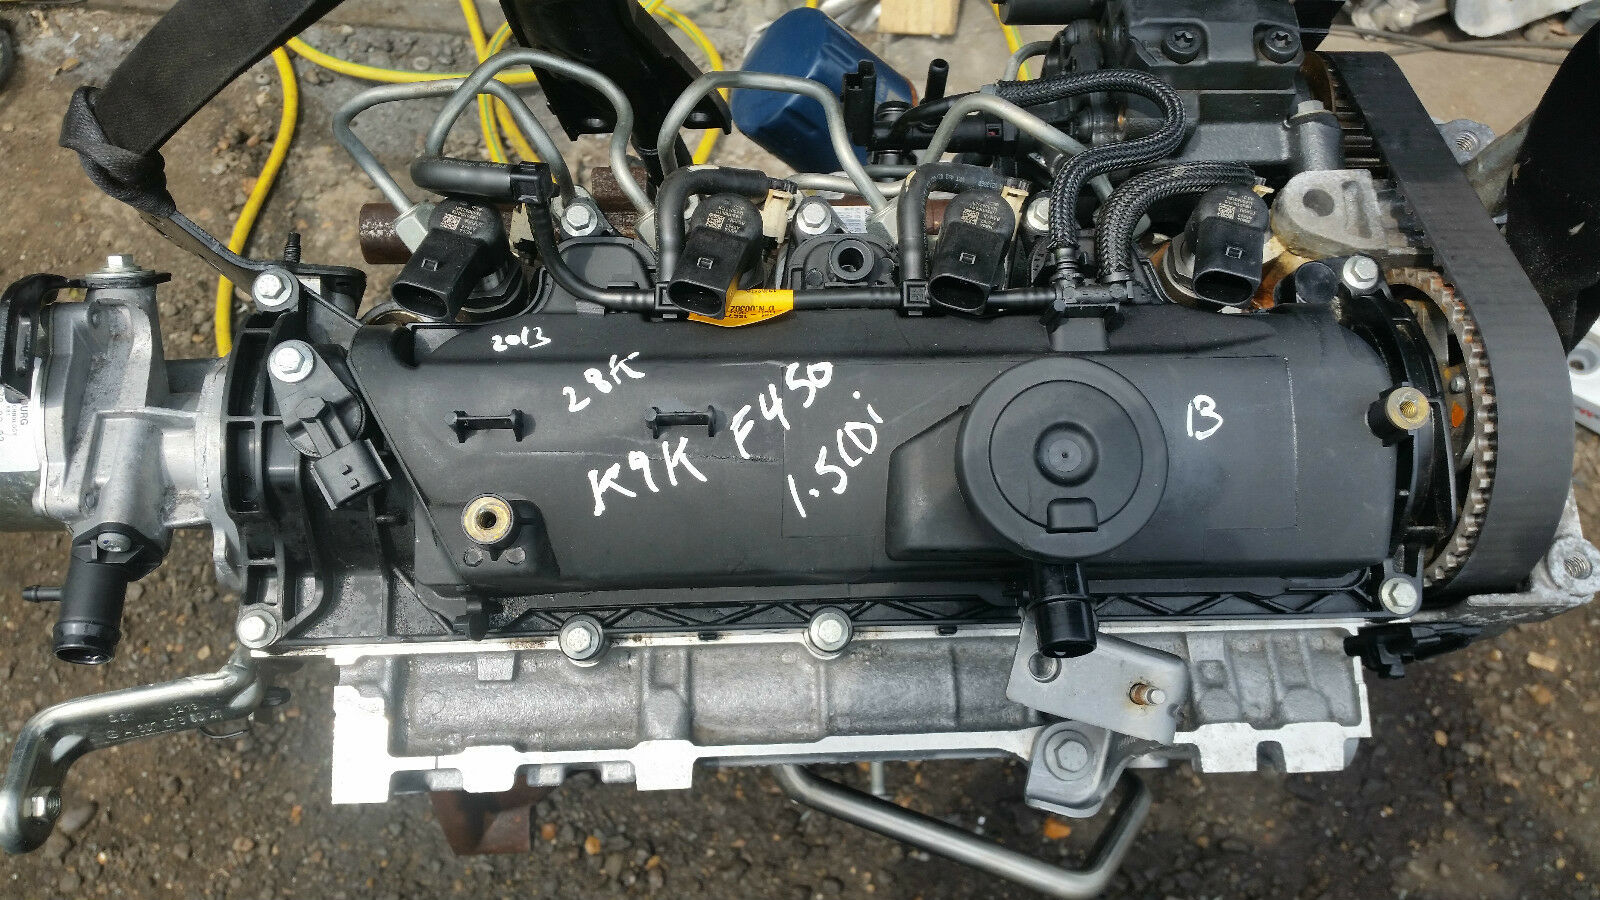 Mercedes benz w176 a180 b180 cdi 1 5 diesel engine 2011 for Mercedes benz diesel engines